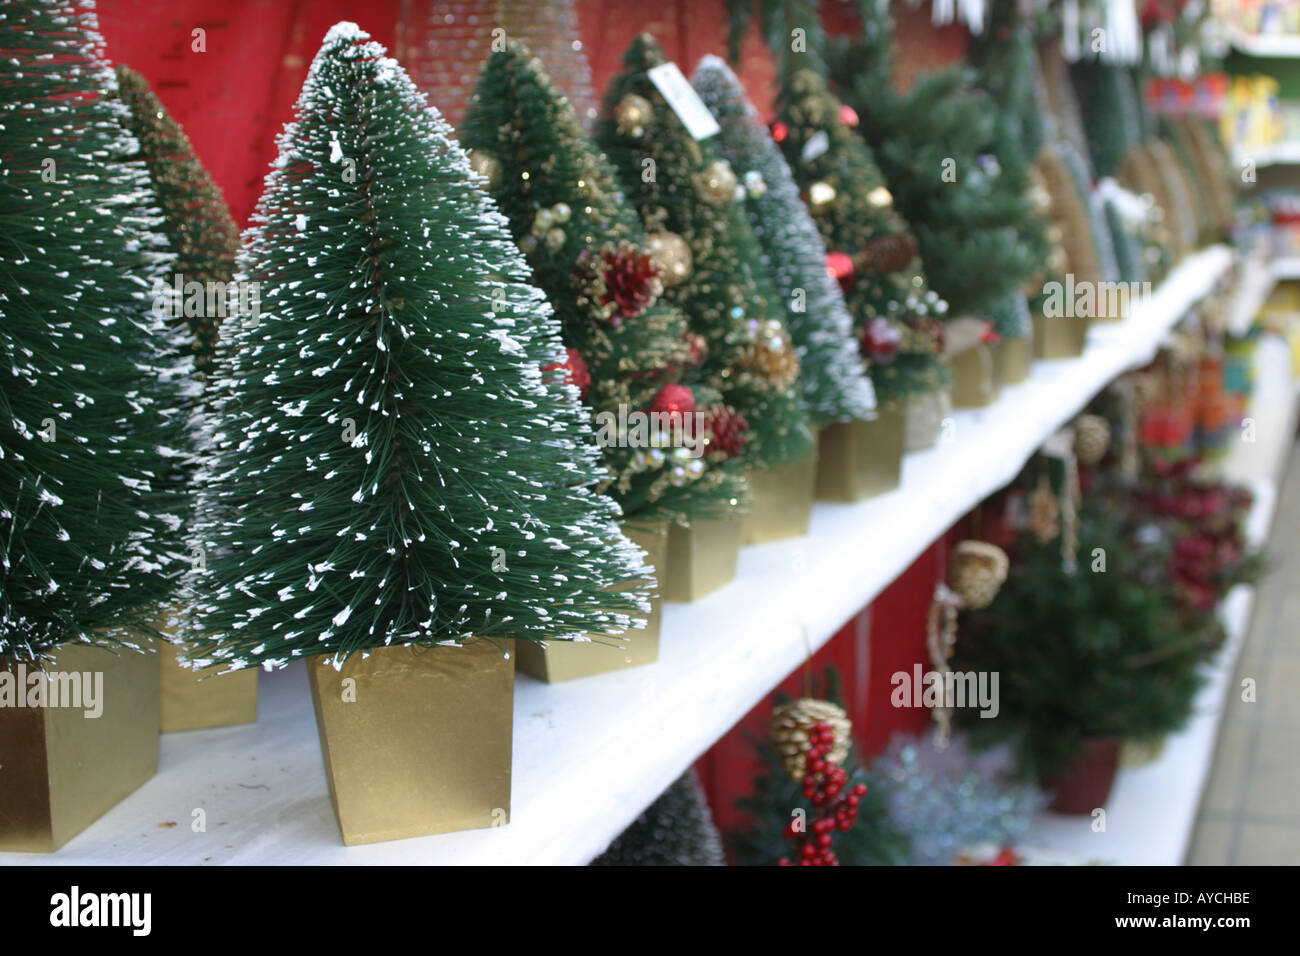 Small artificial Christmas trees on sale at a garden centre in the ...